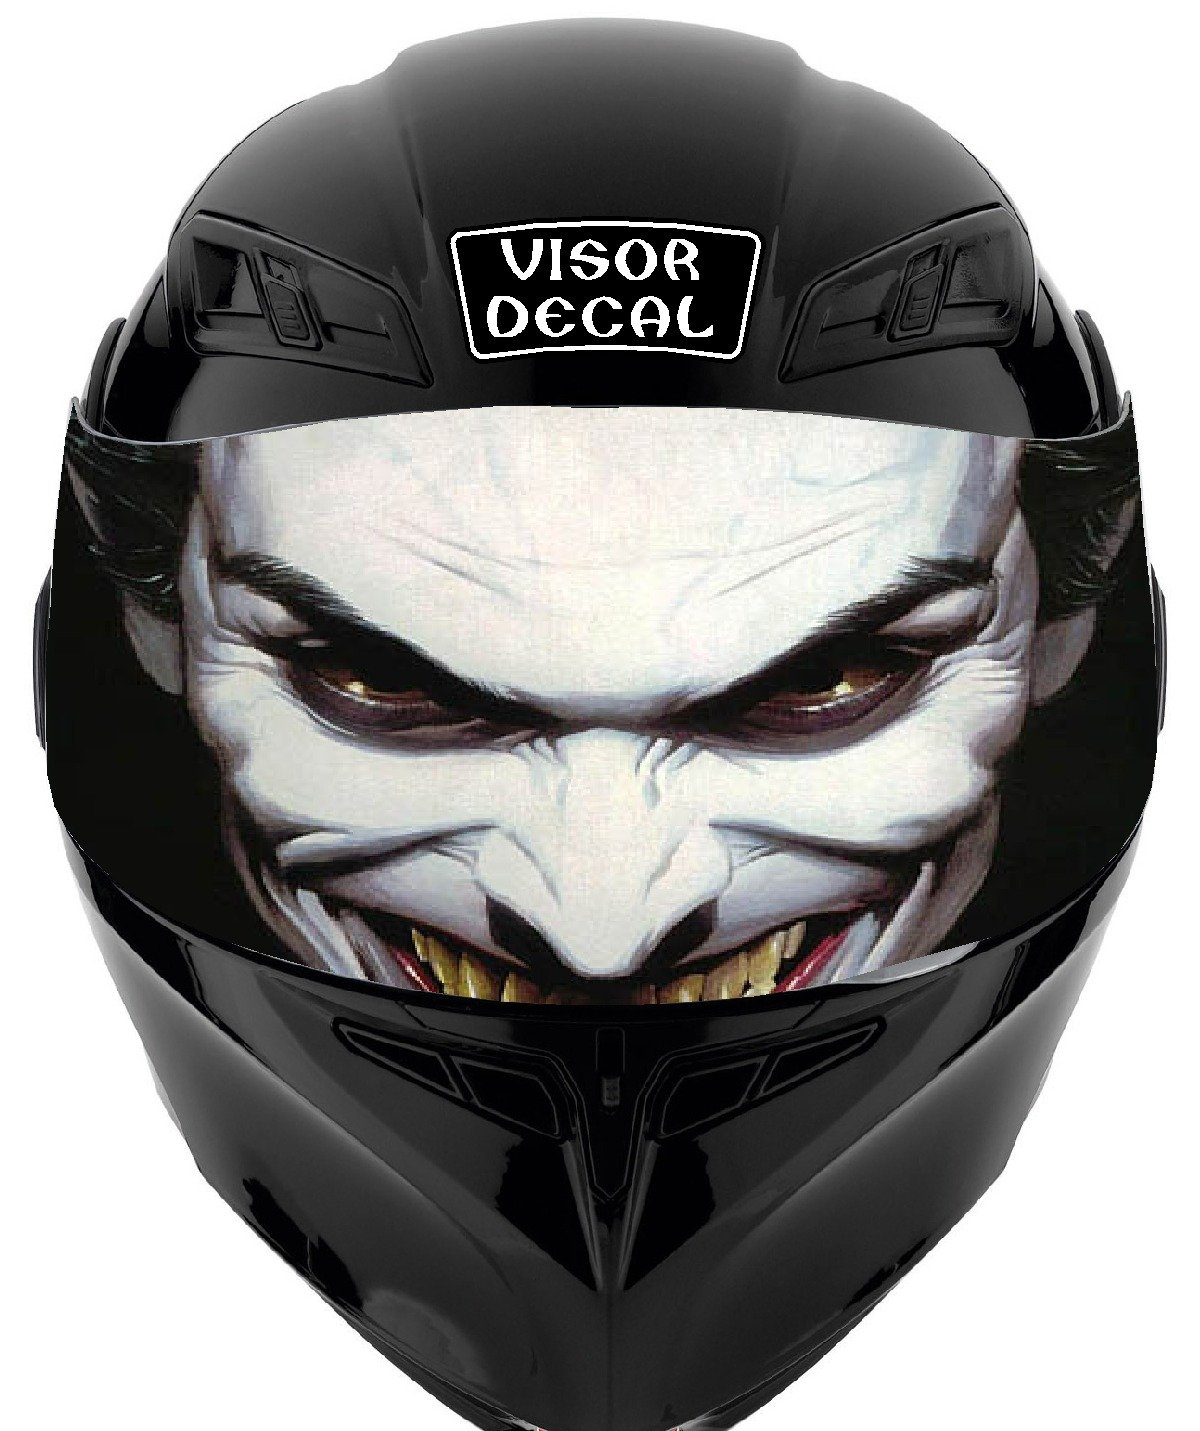 Amazon com v16 joker visor tint decal graphic sticker helmet fits icon shoei bell hjc oneal scorpion agv automotive